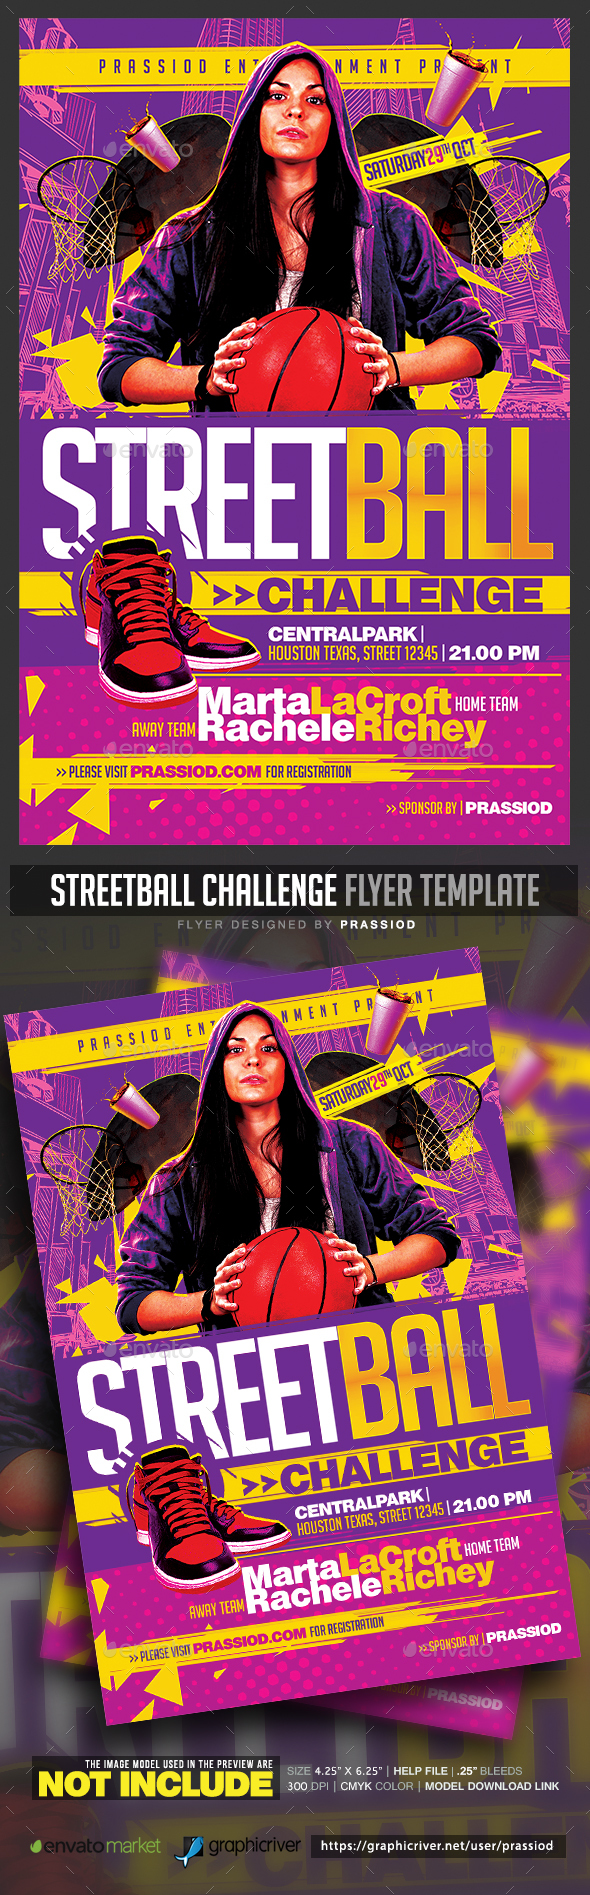 Streetball Challenge Flyer Template - Sports Events